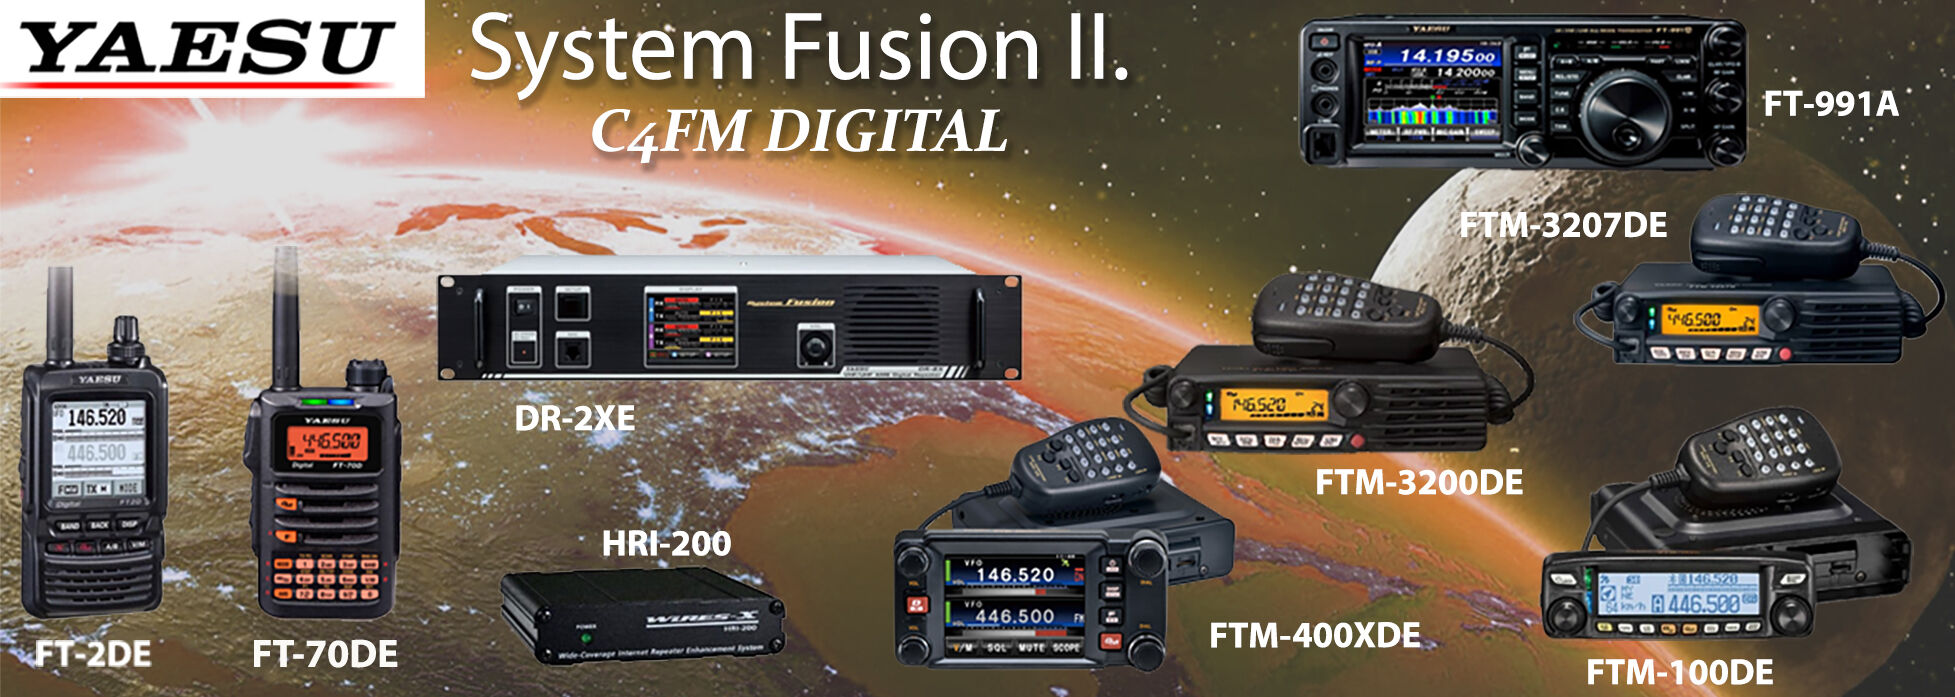 system fusion ii